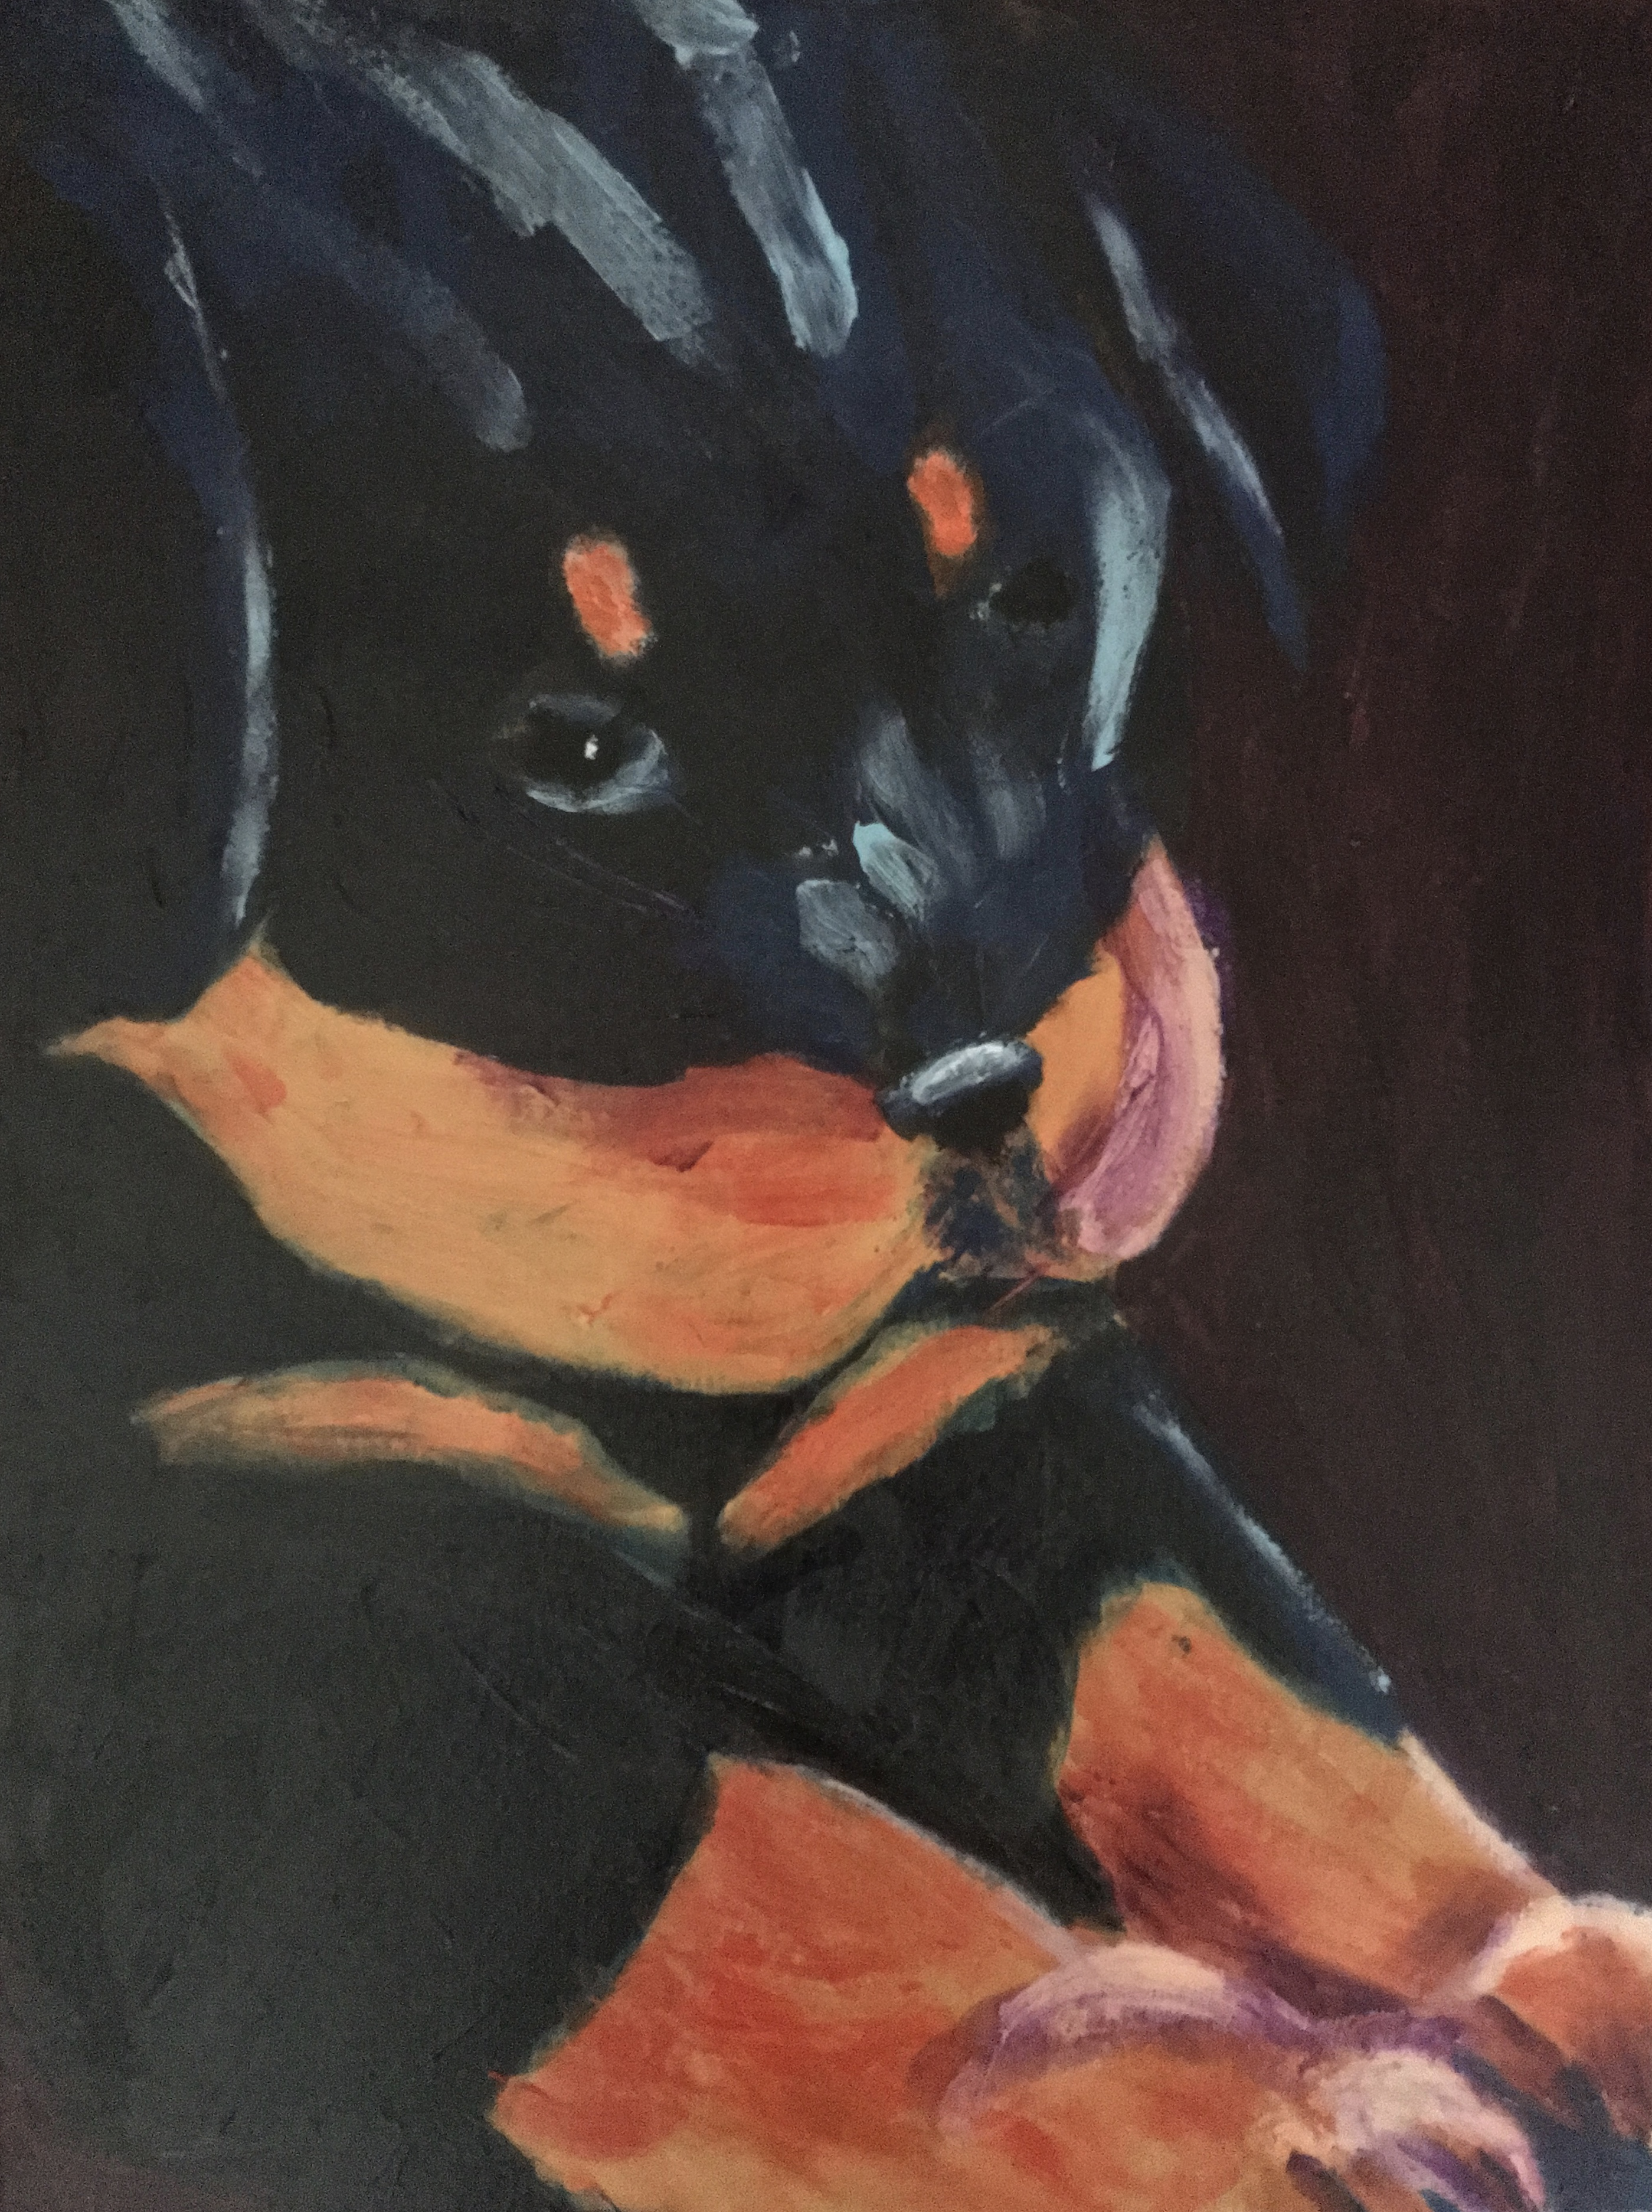 Rottweiler Puppy - Original For Sale - Prints Available